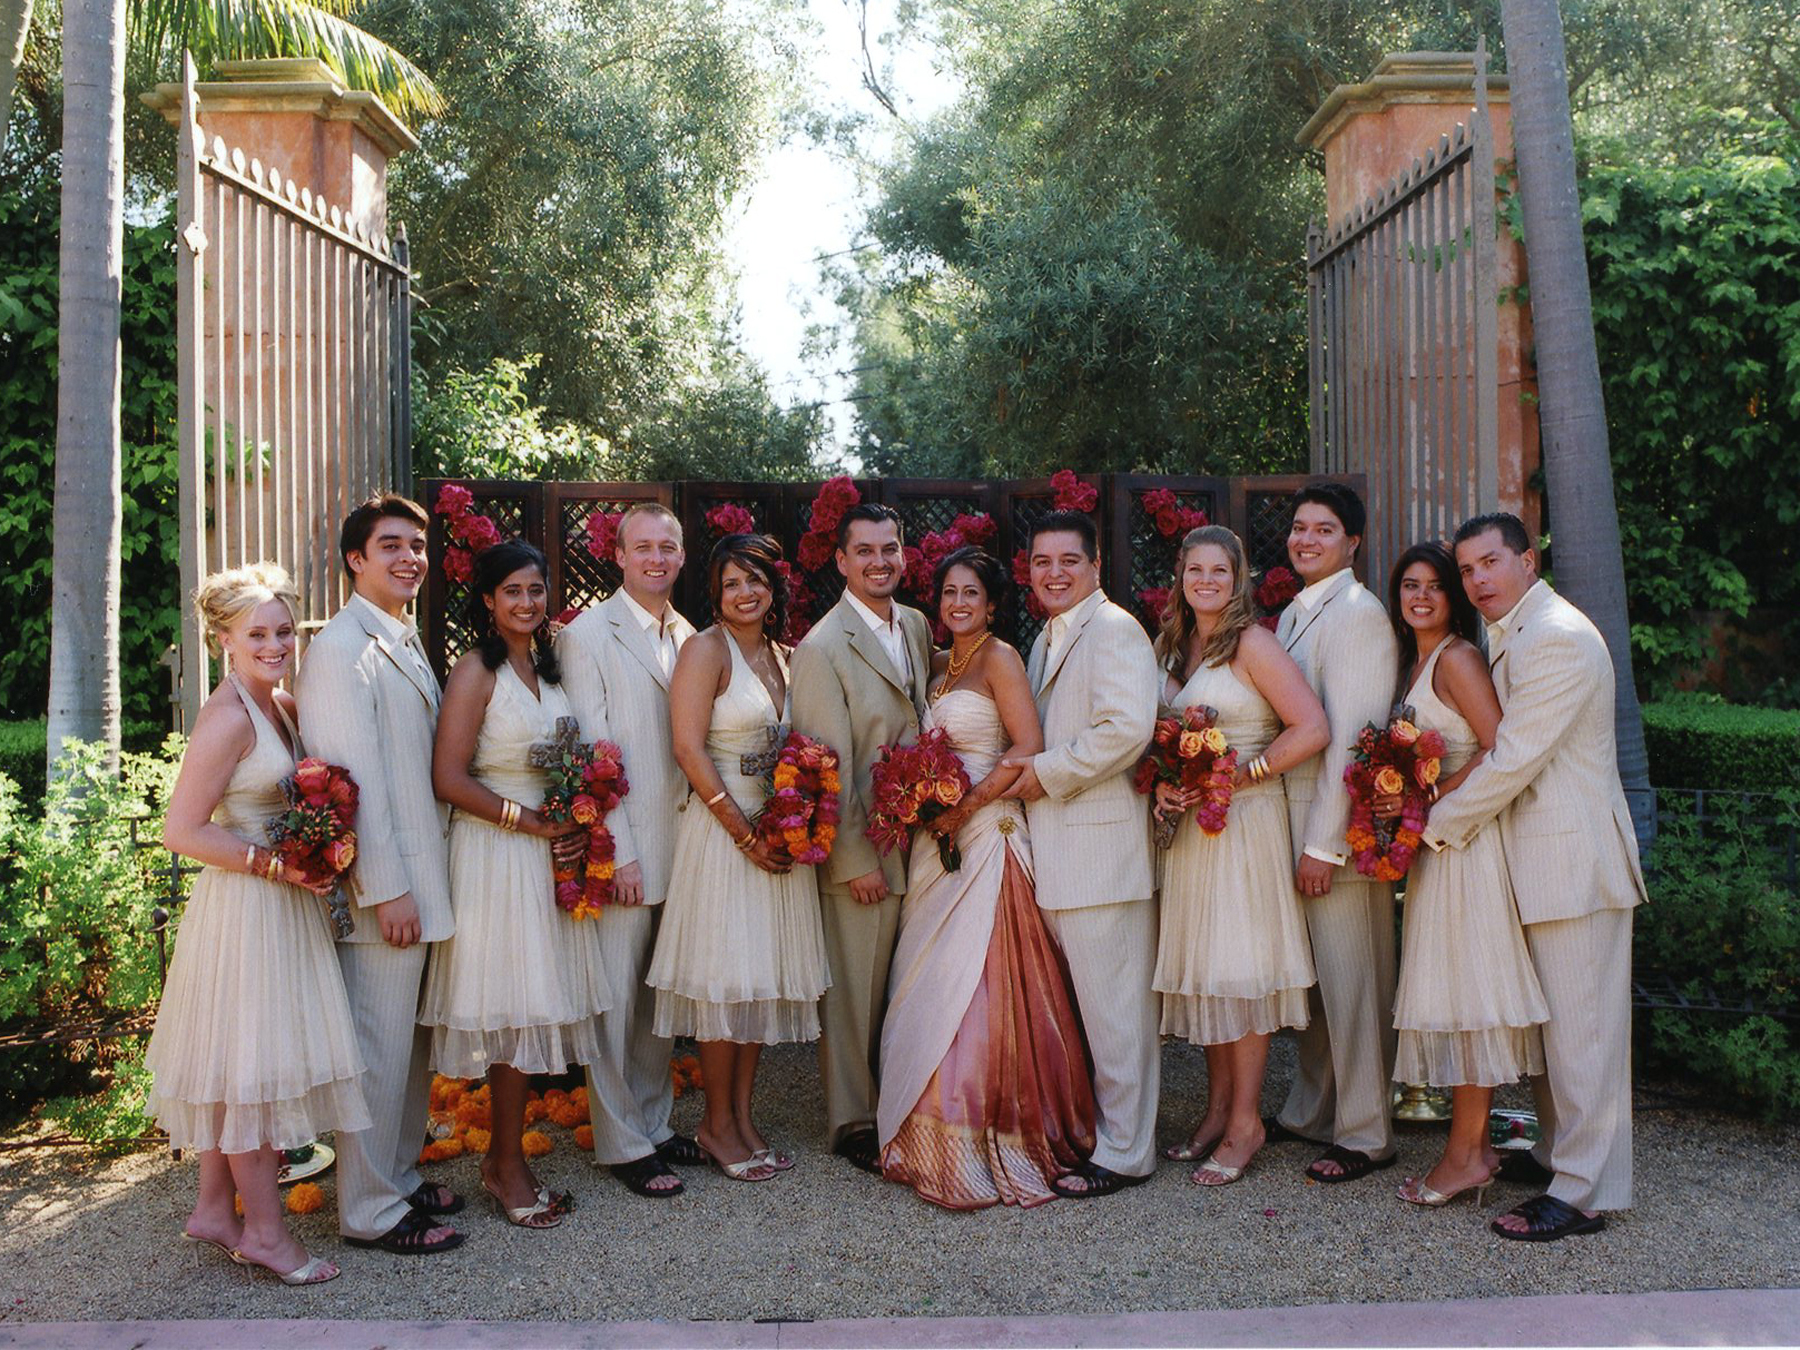 traditional mexican wedding wear mexican wedding dress The Wedding Party Models A Soft Neutral Palette Allowing